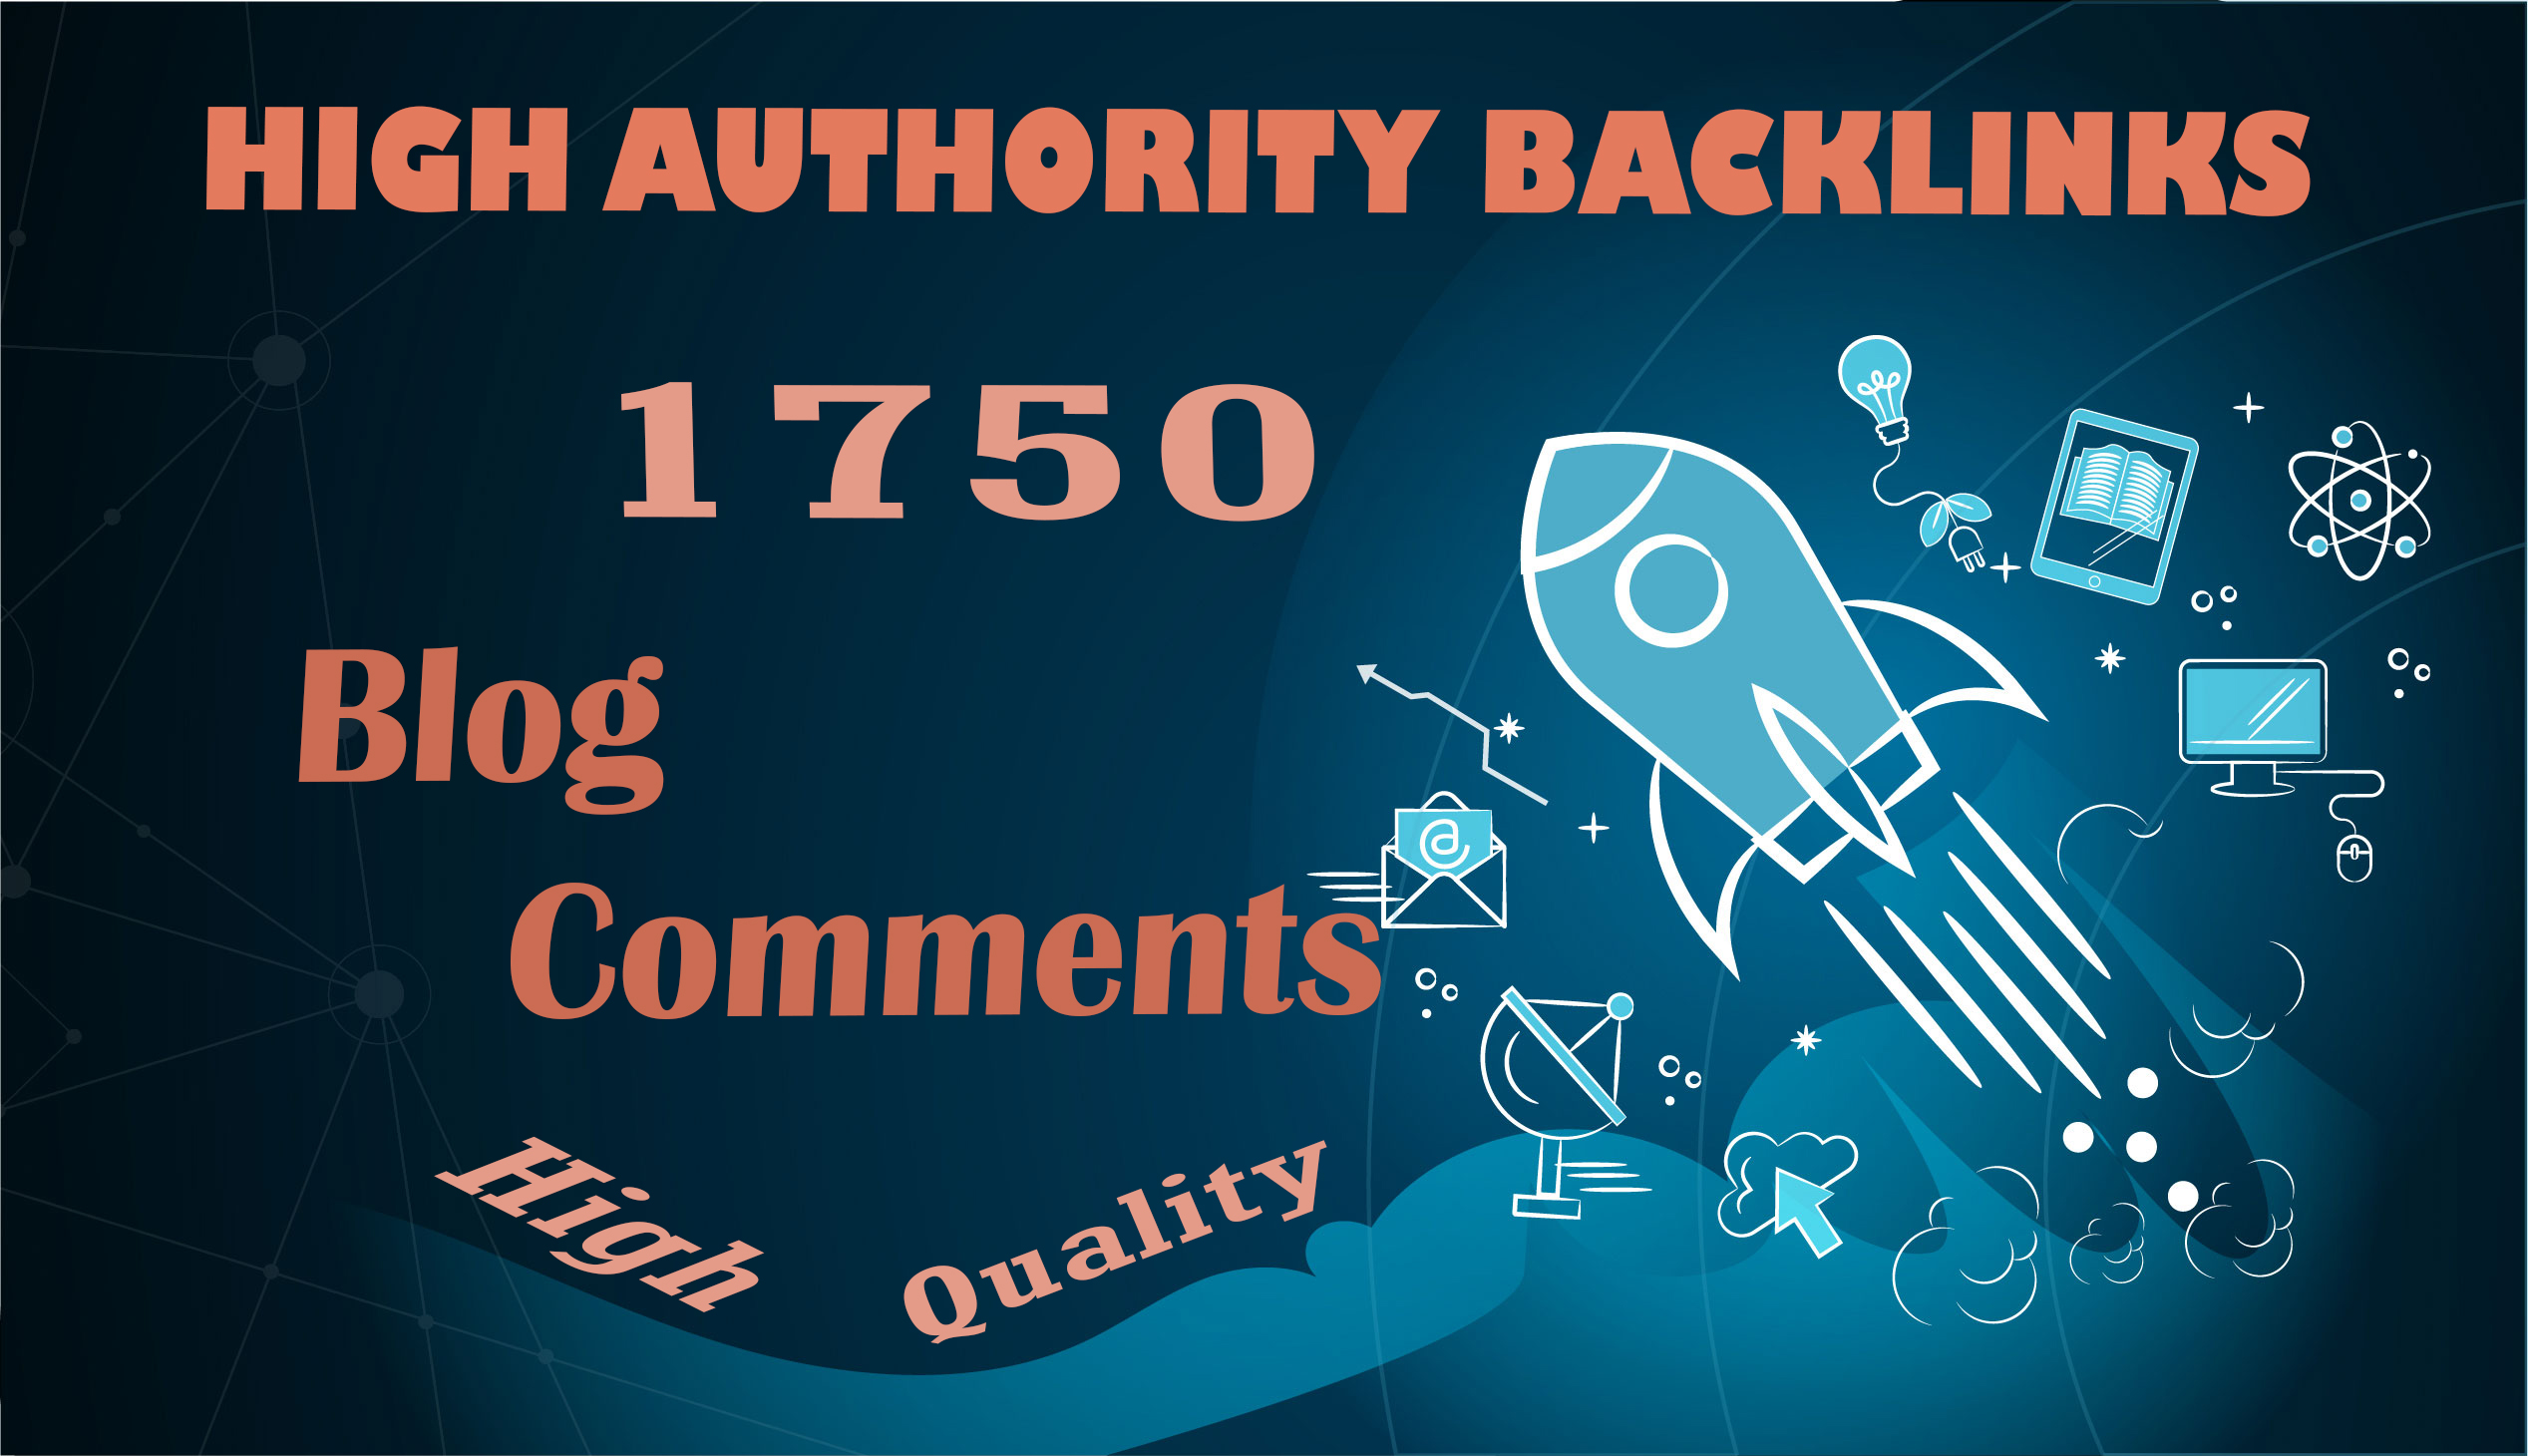 I will build 1750 Blog Comments Backlinks on High Quality DA/PA/TF/CF/DR Sites Google Indexed